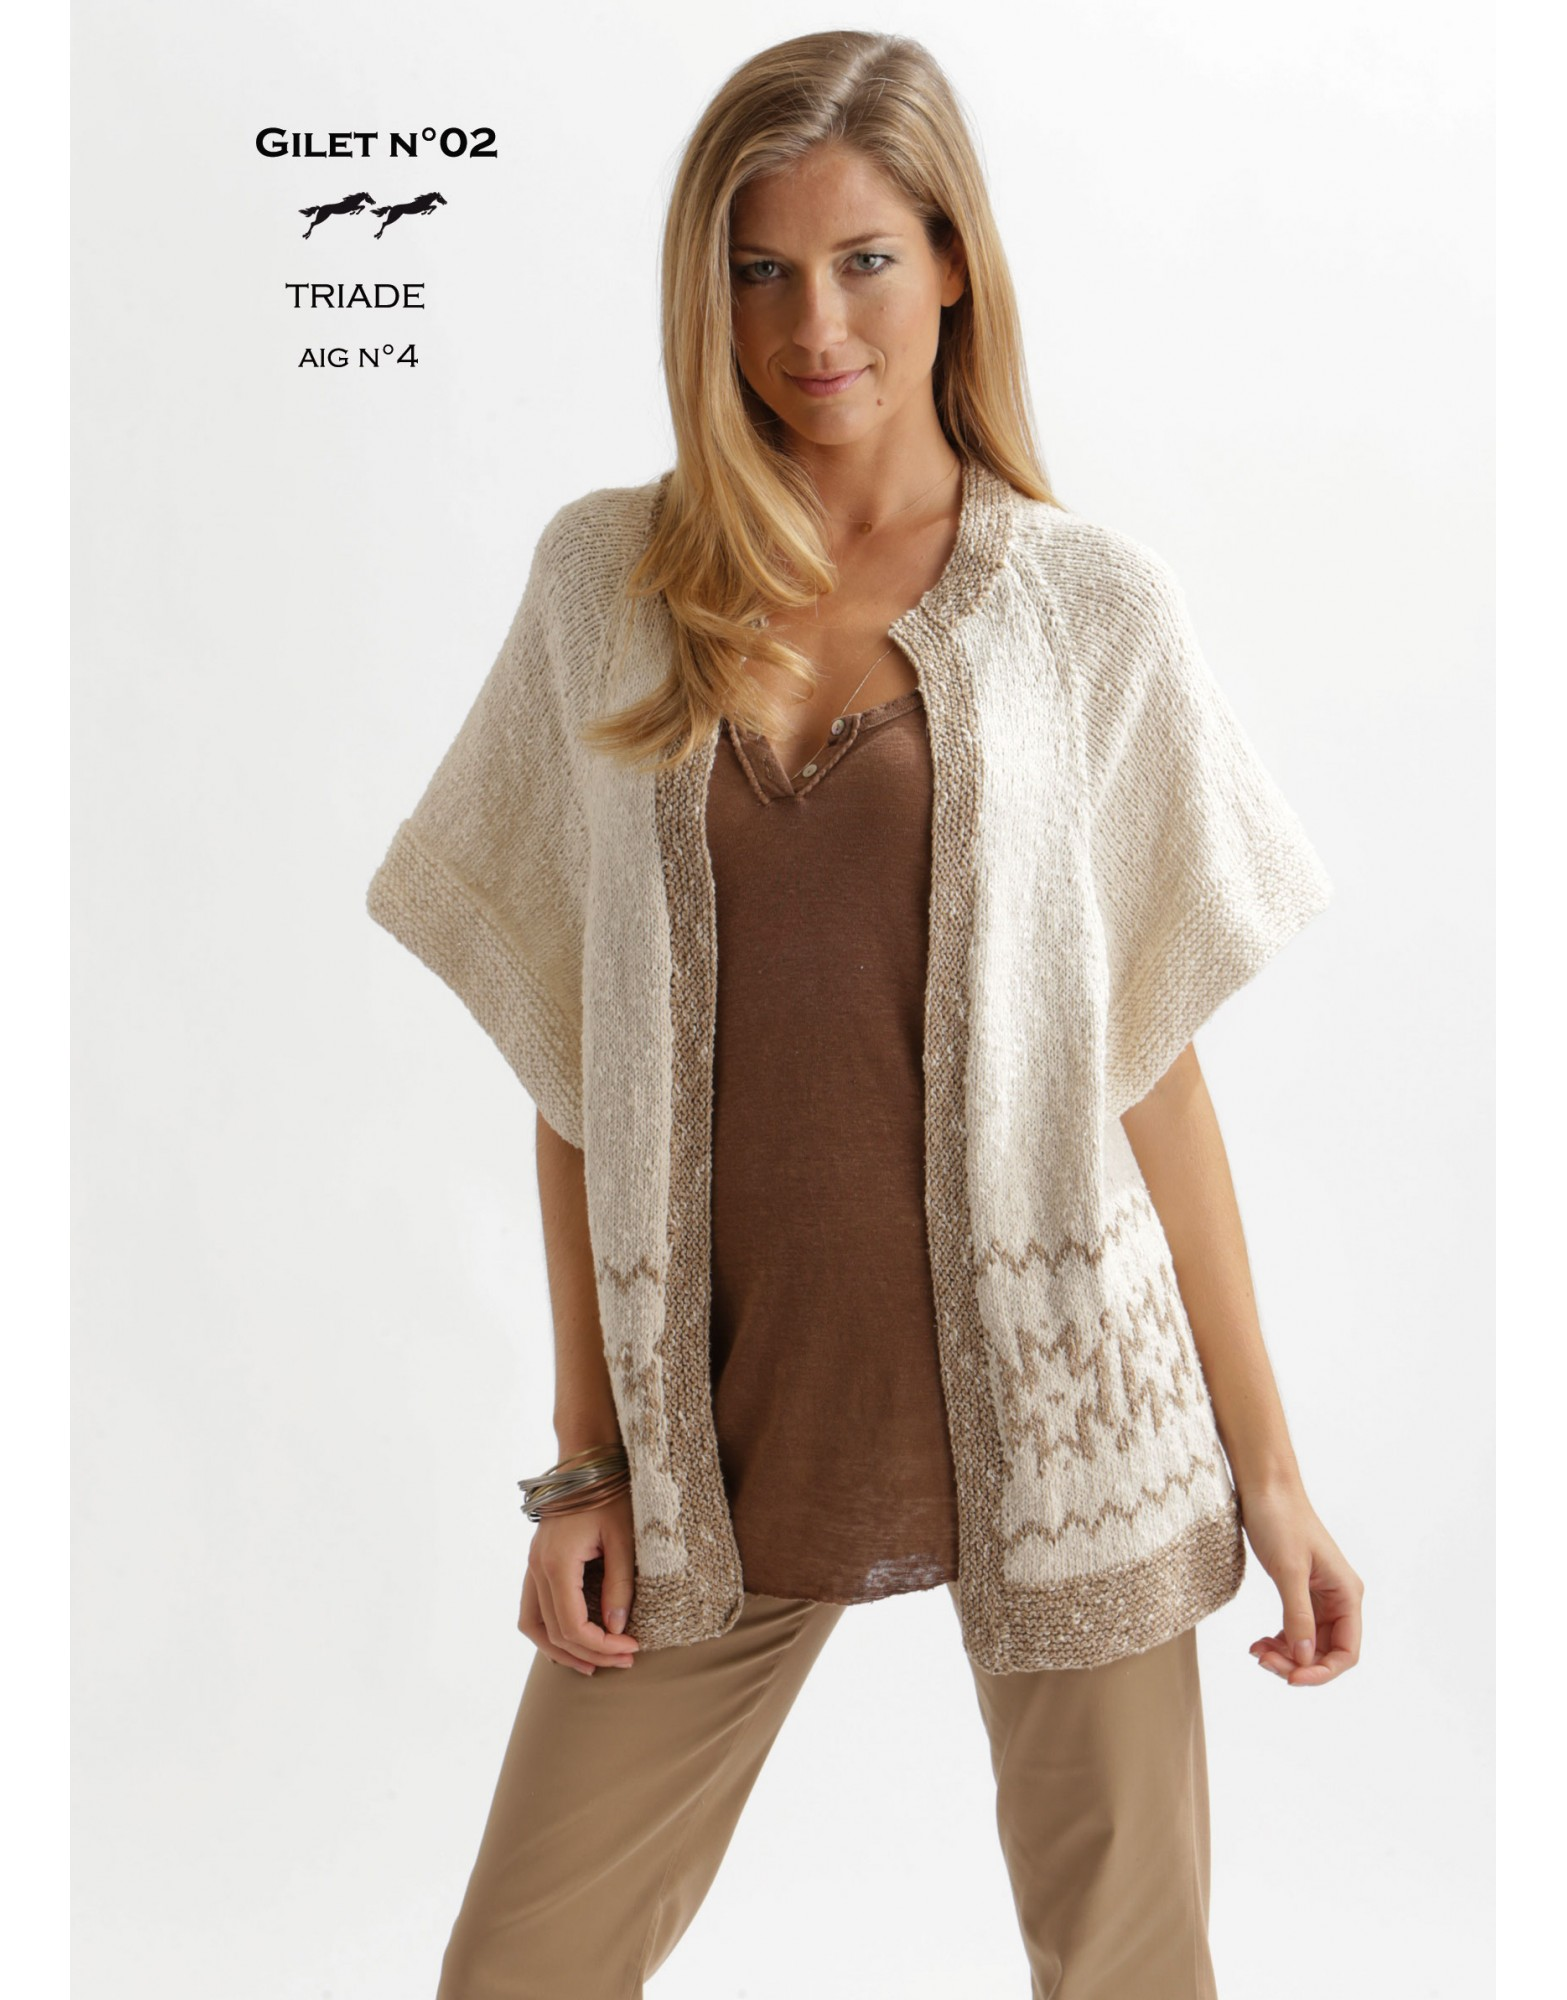 Knitting Pattern Cardigan Short Sleeve : Over Sized Cardigan with Short Sleeves Free Knitting ...